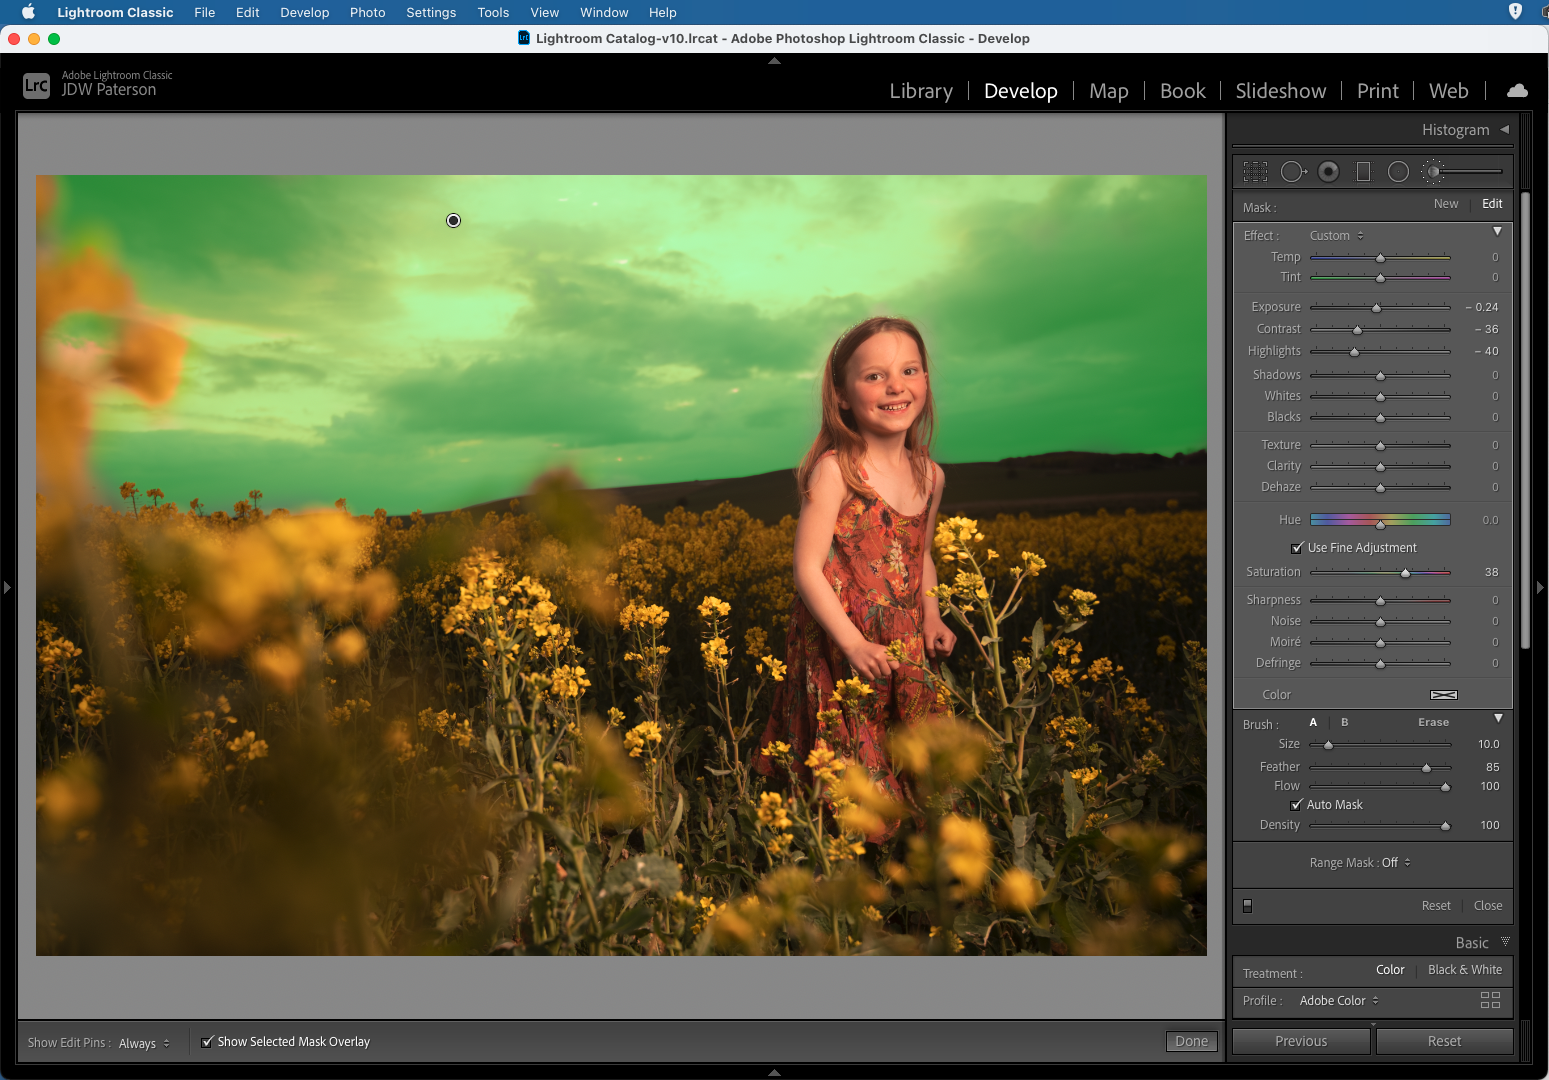 Screenshot showing the auto mask setting in Adobe Lightroom